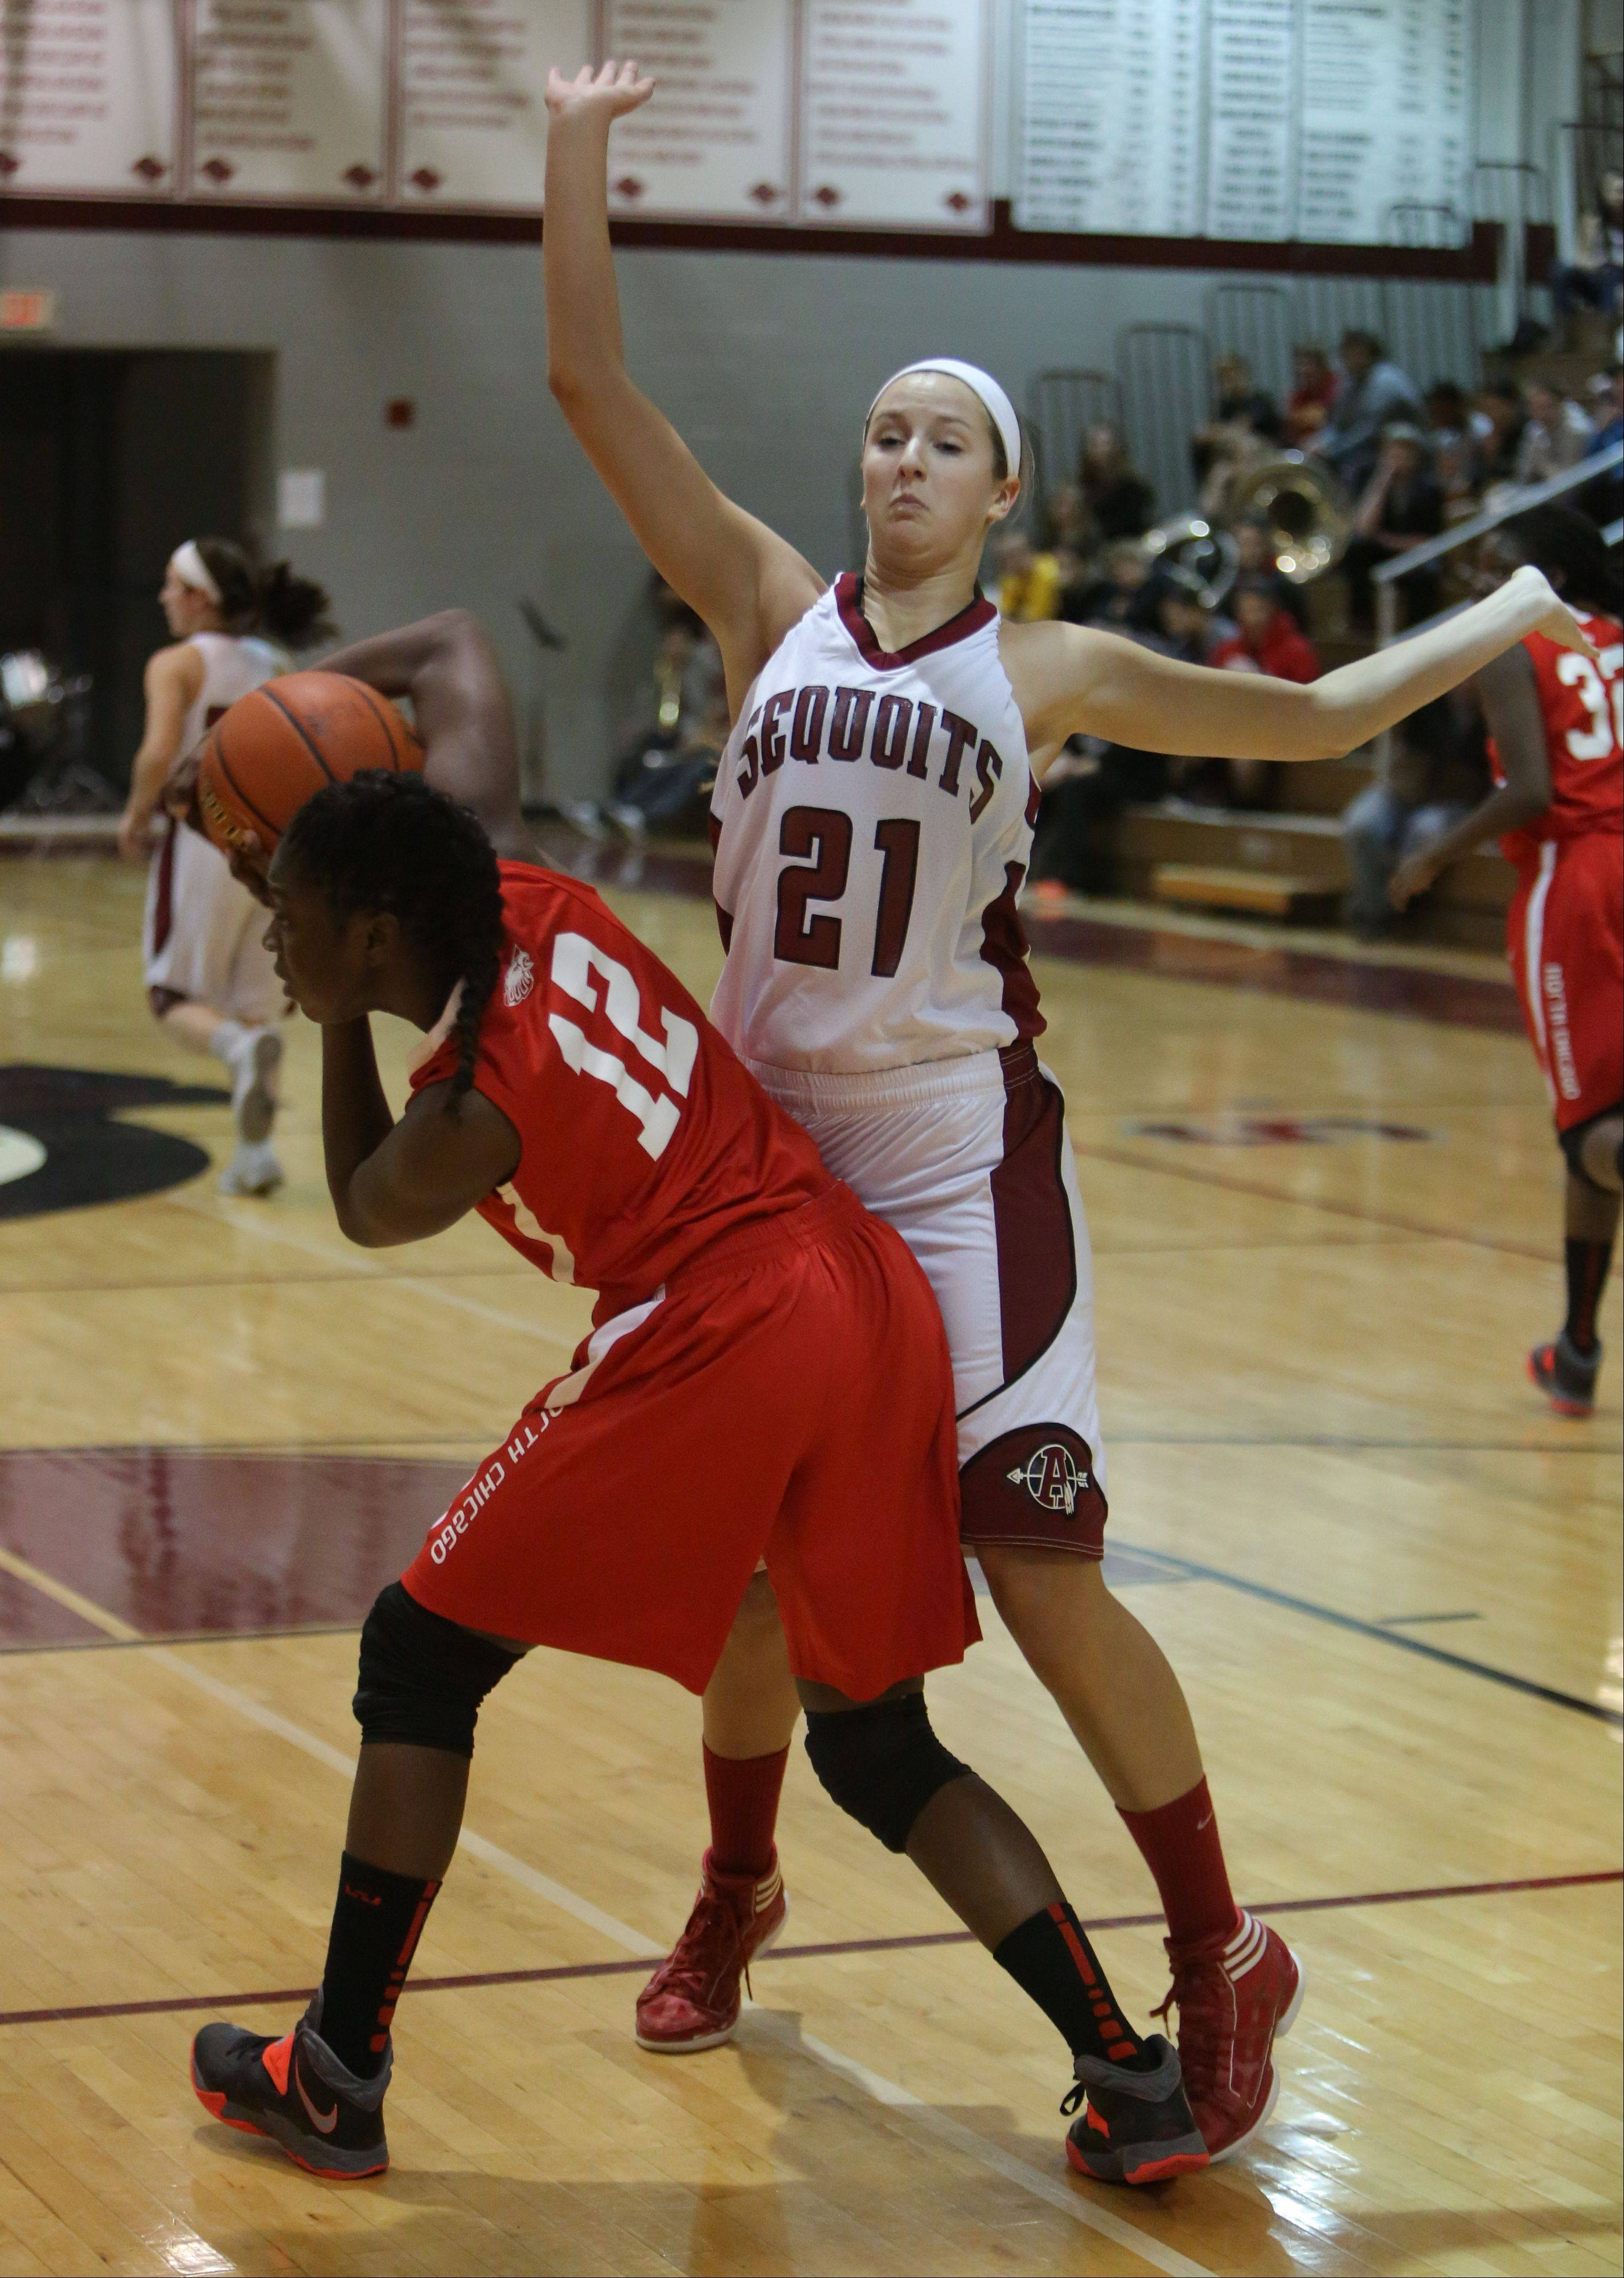 Images from the North Chicago at Antioch girls basketball game on Wednesday, January 15.